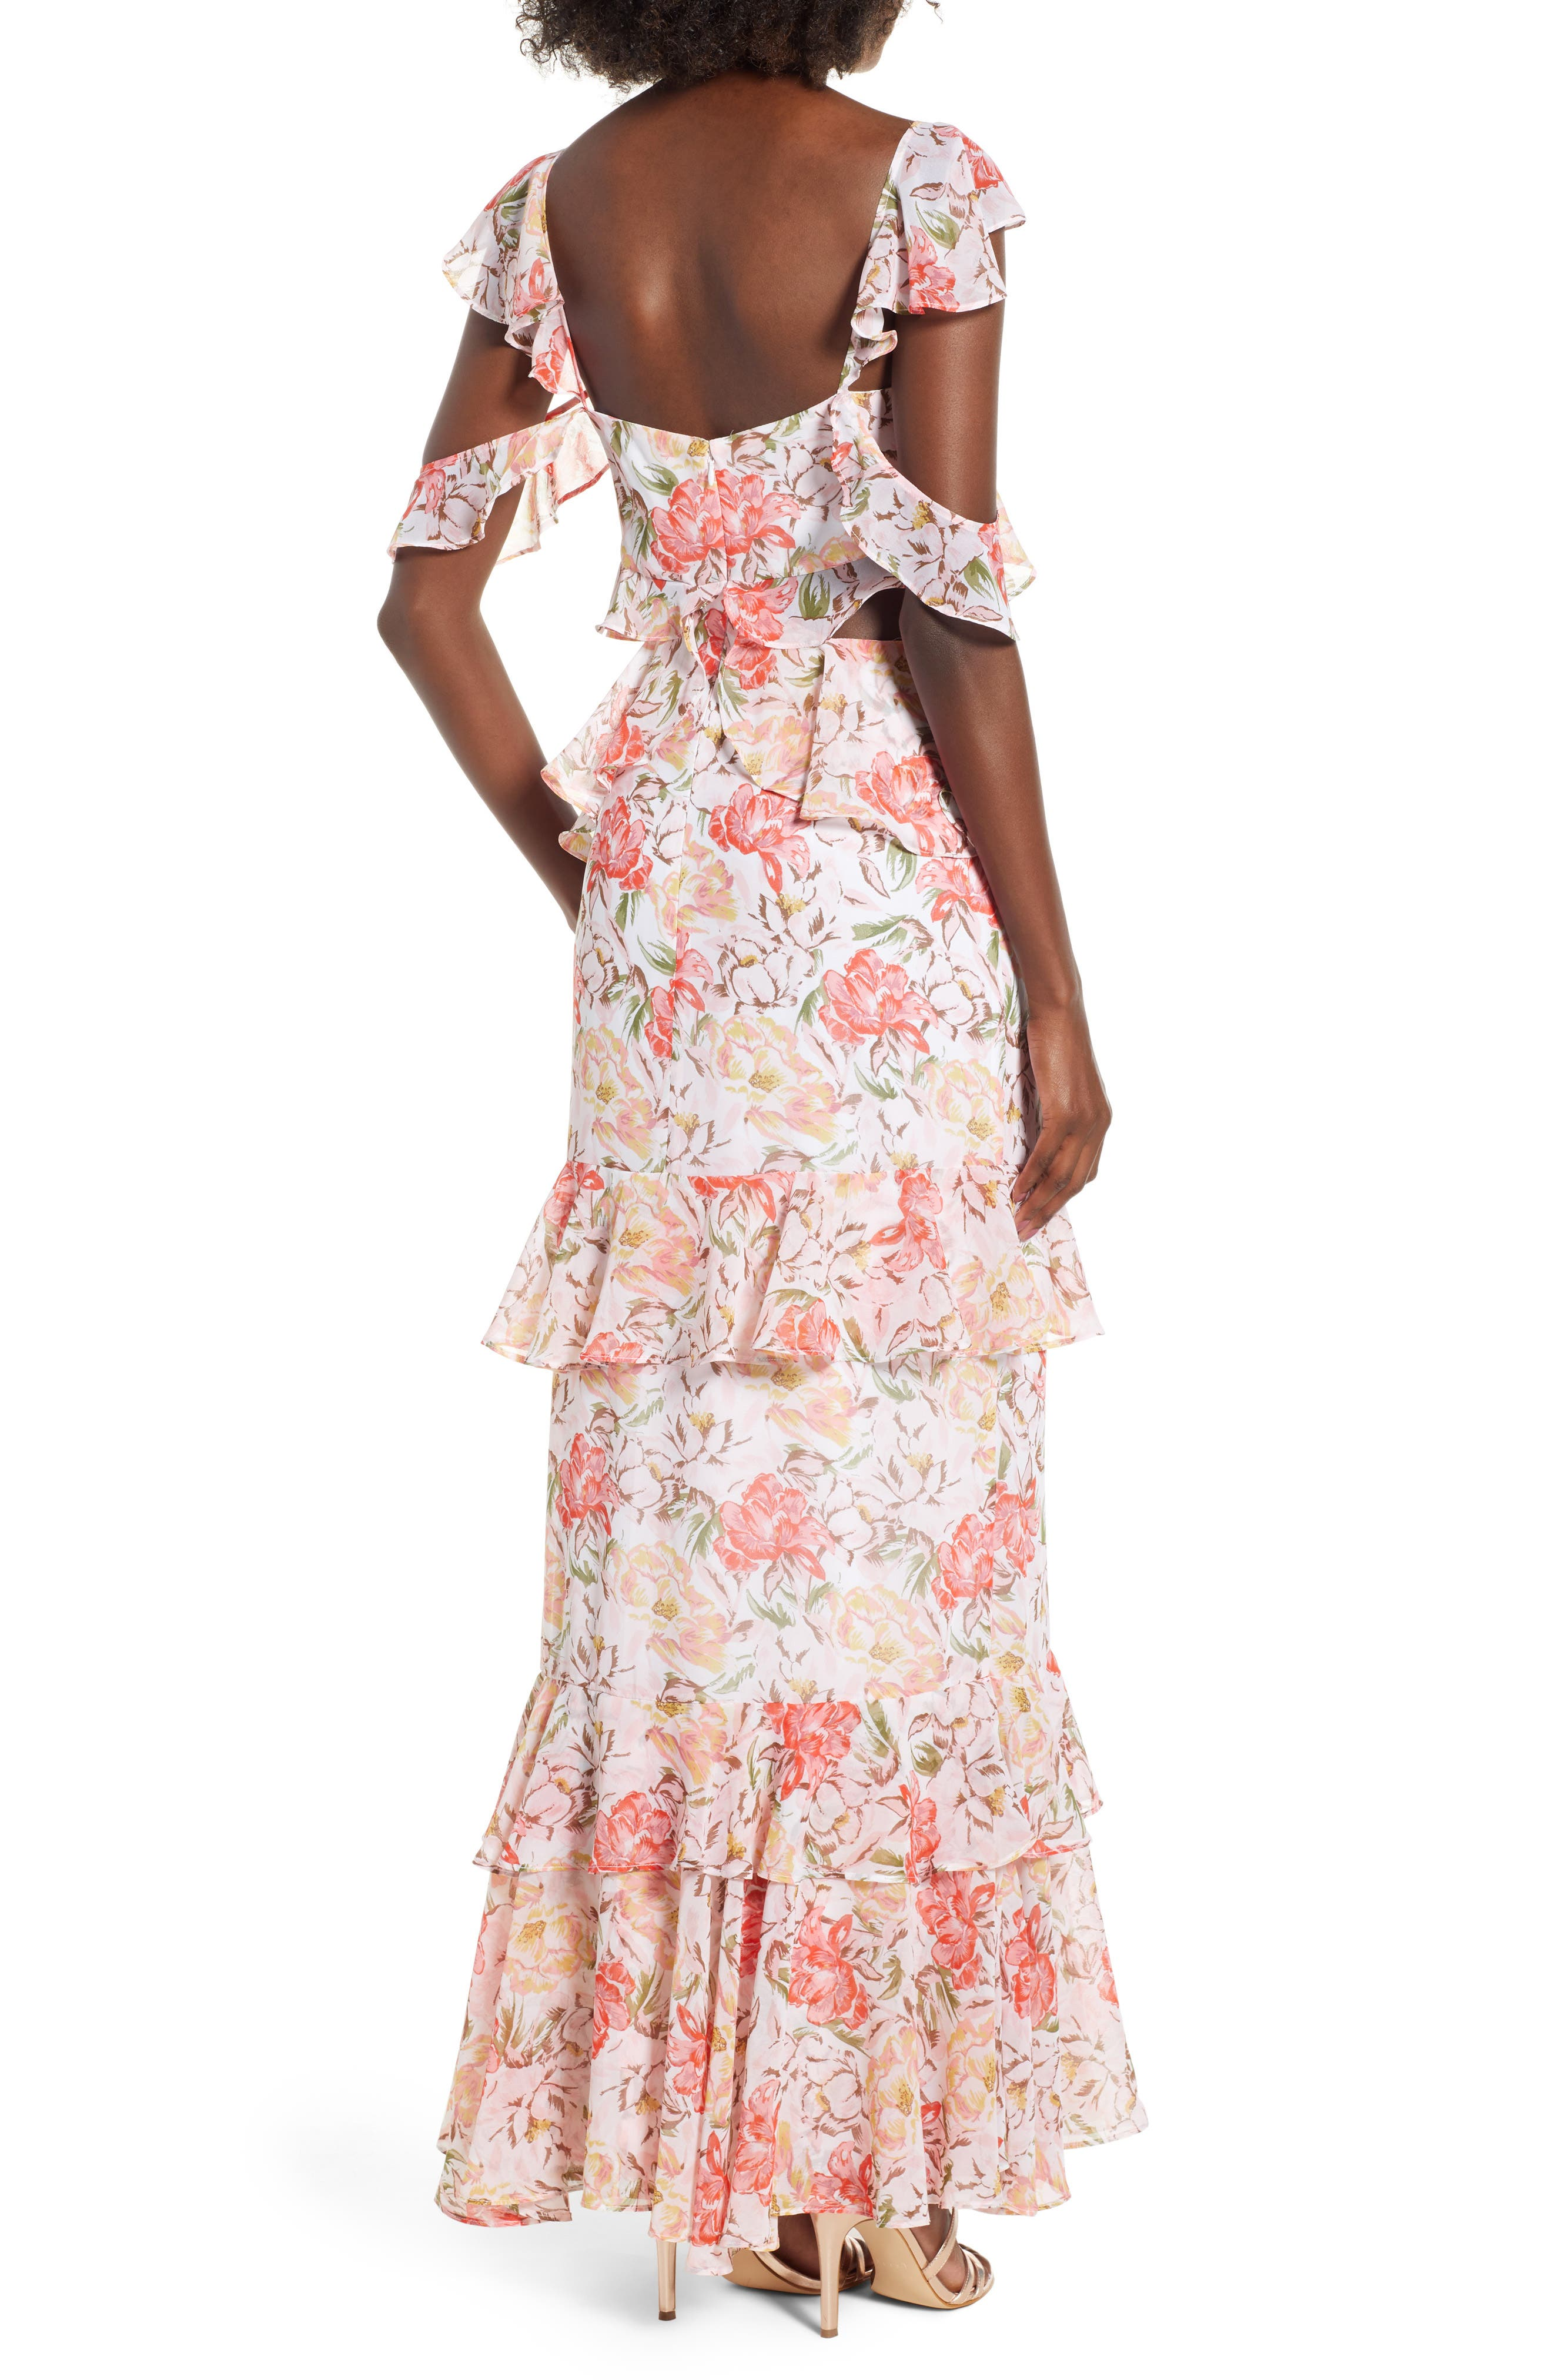 Milan Cut Out Ruffle Maxi Dress,                             Alternate thumbnail 3, color,                             Ivory Floral